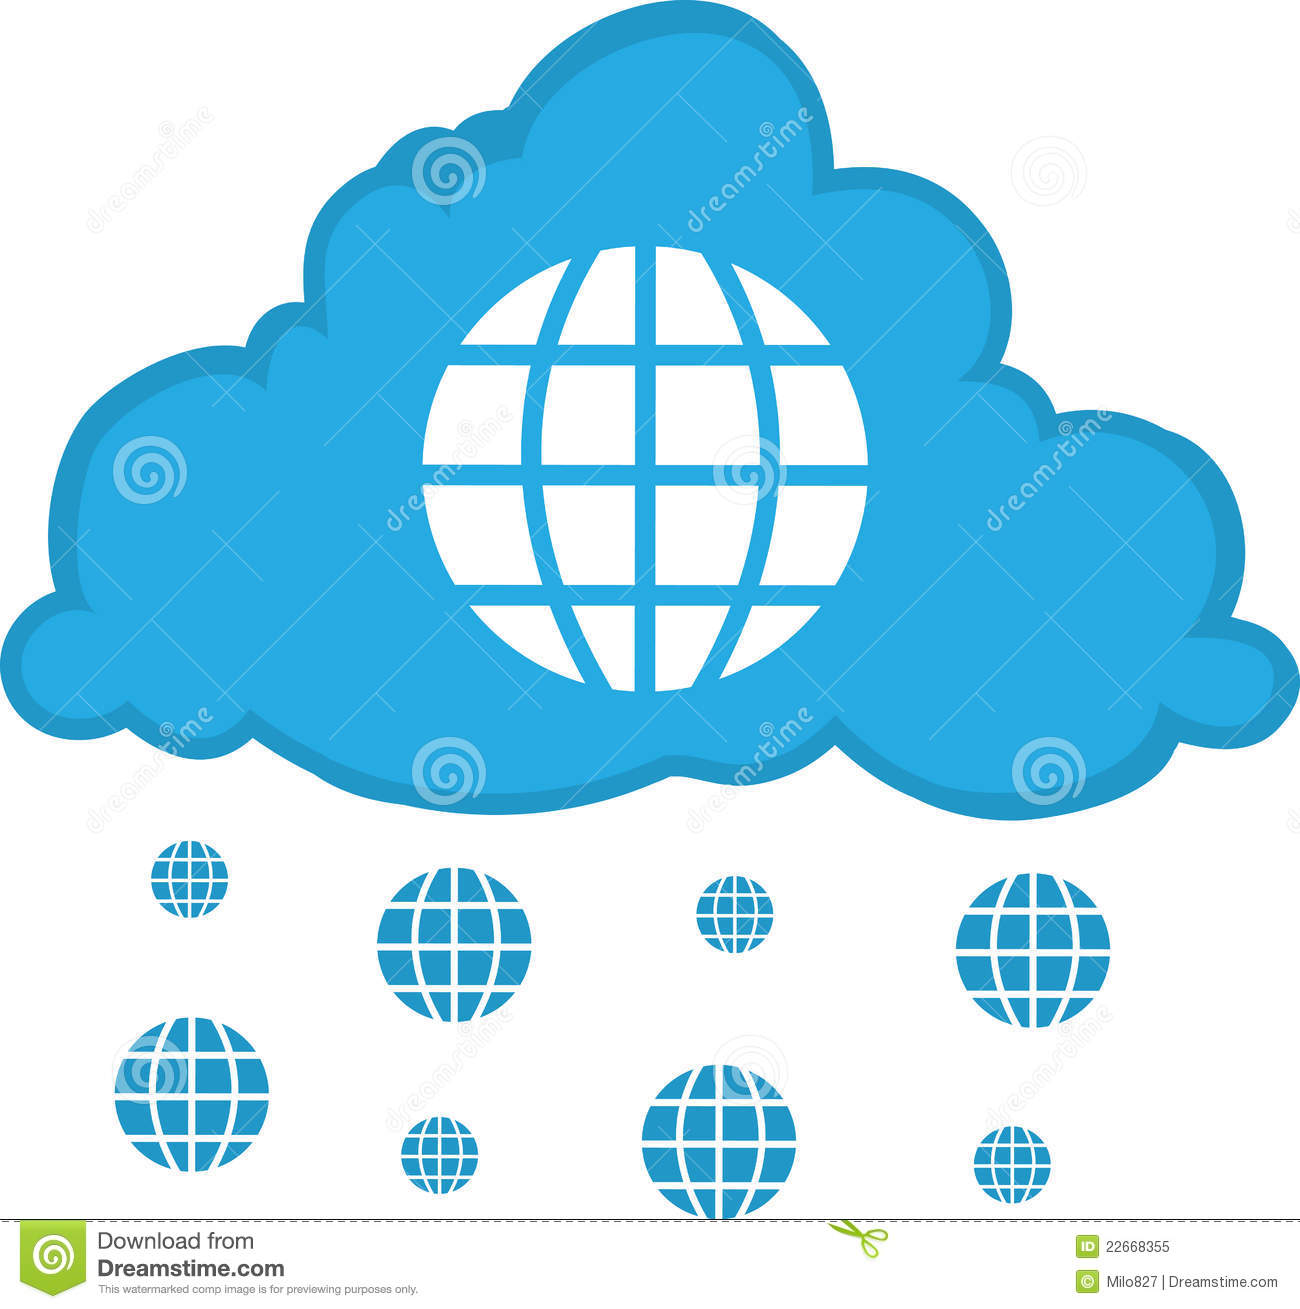 Internet Cloud Royalty Free Stock Photo Image 22668355